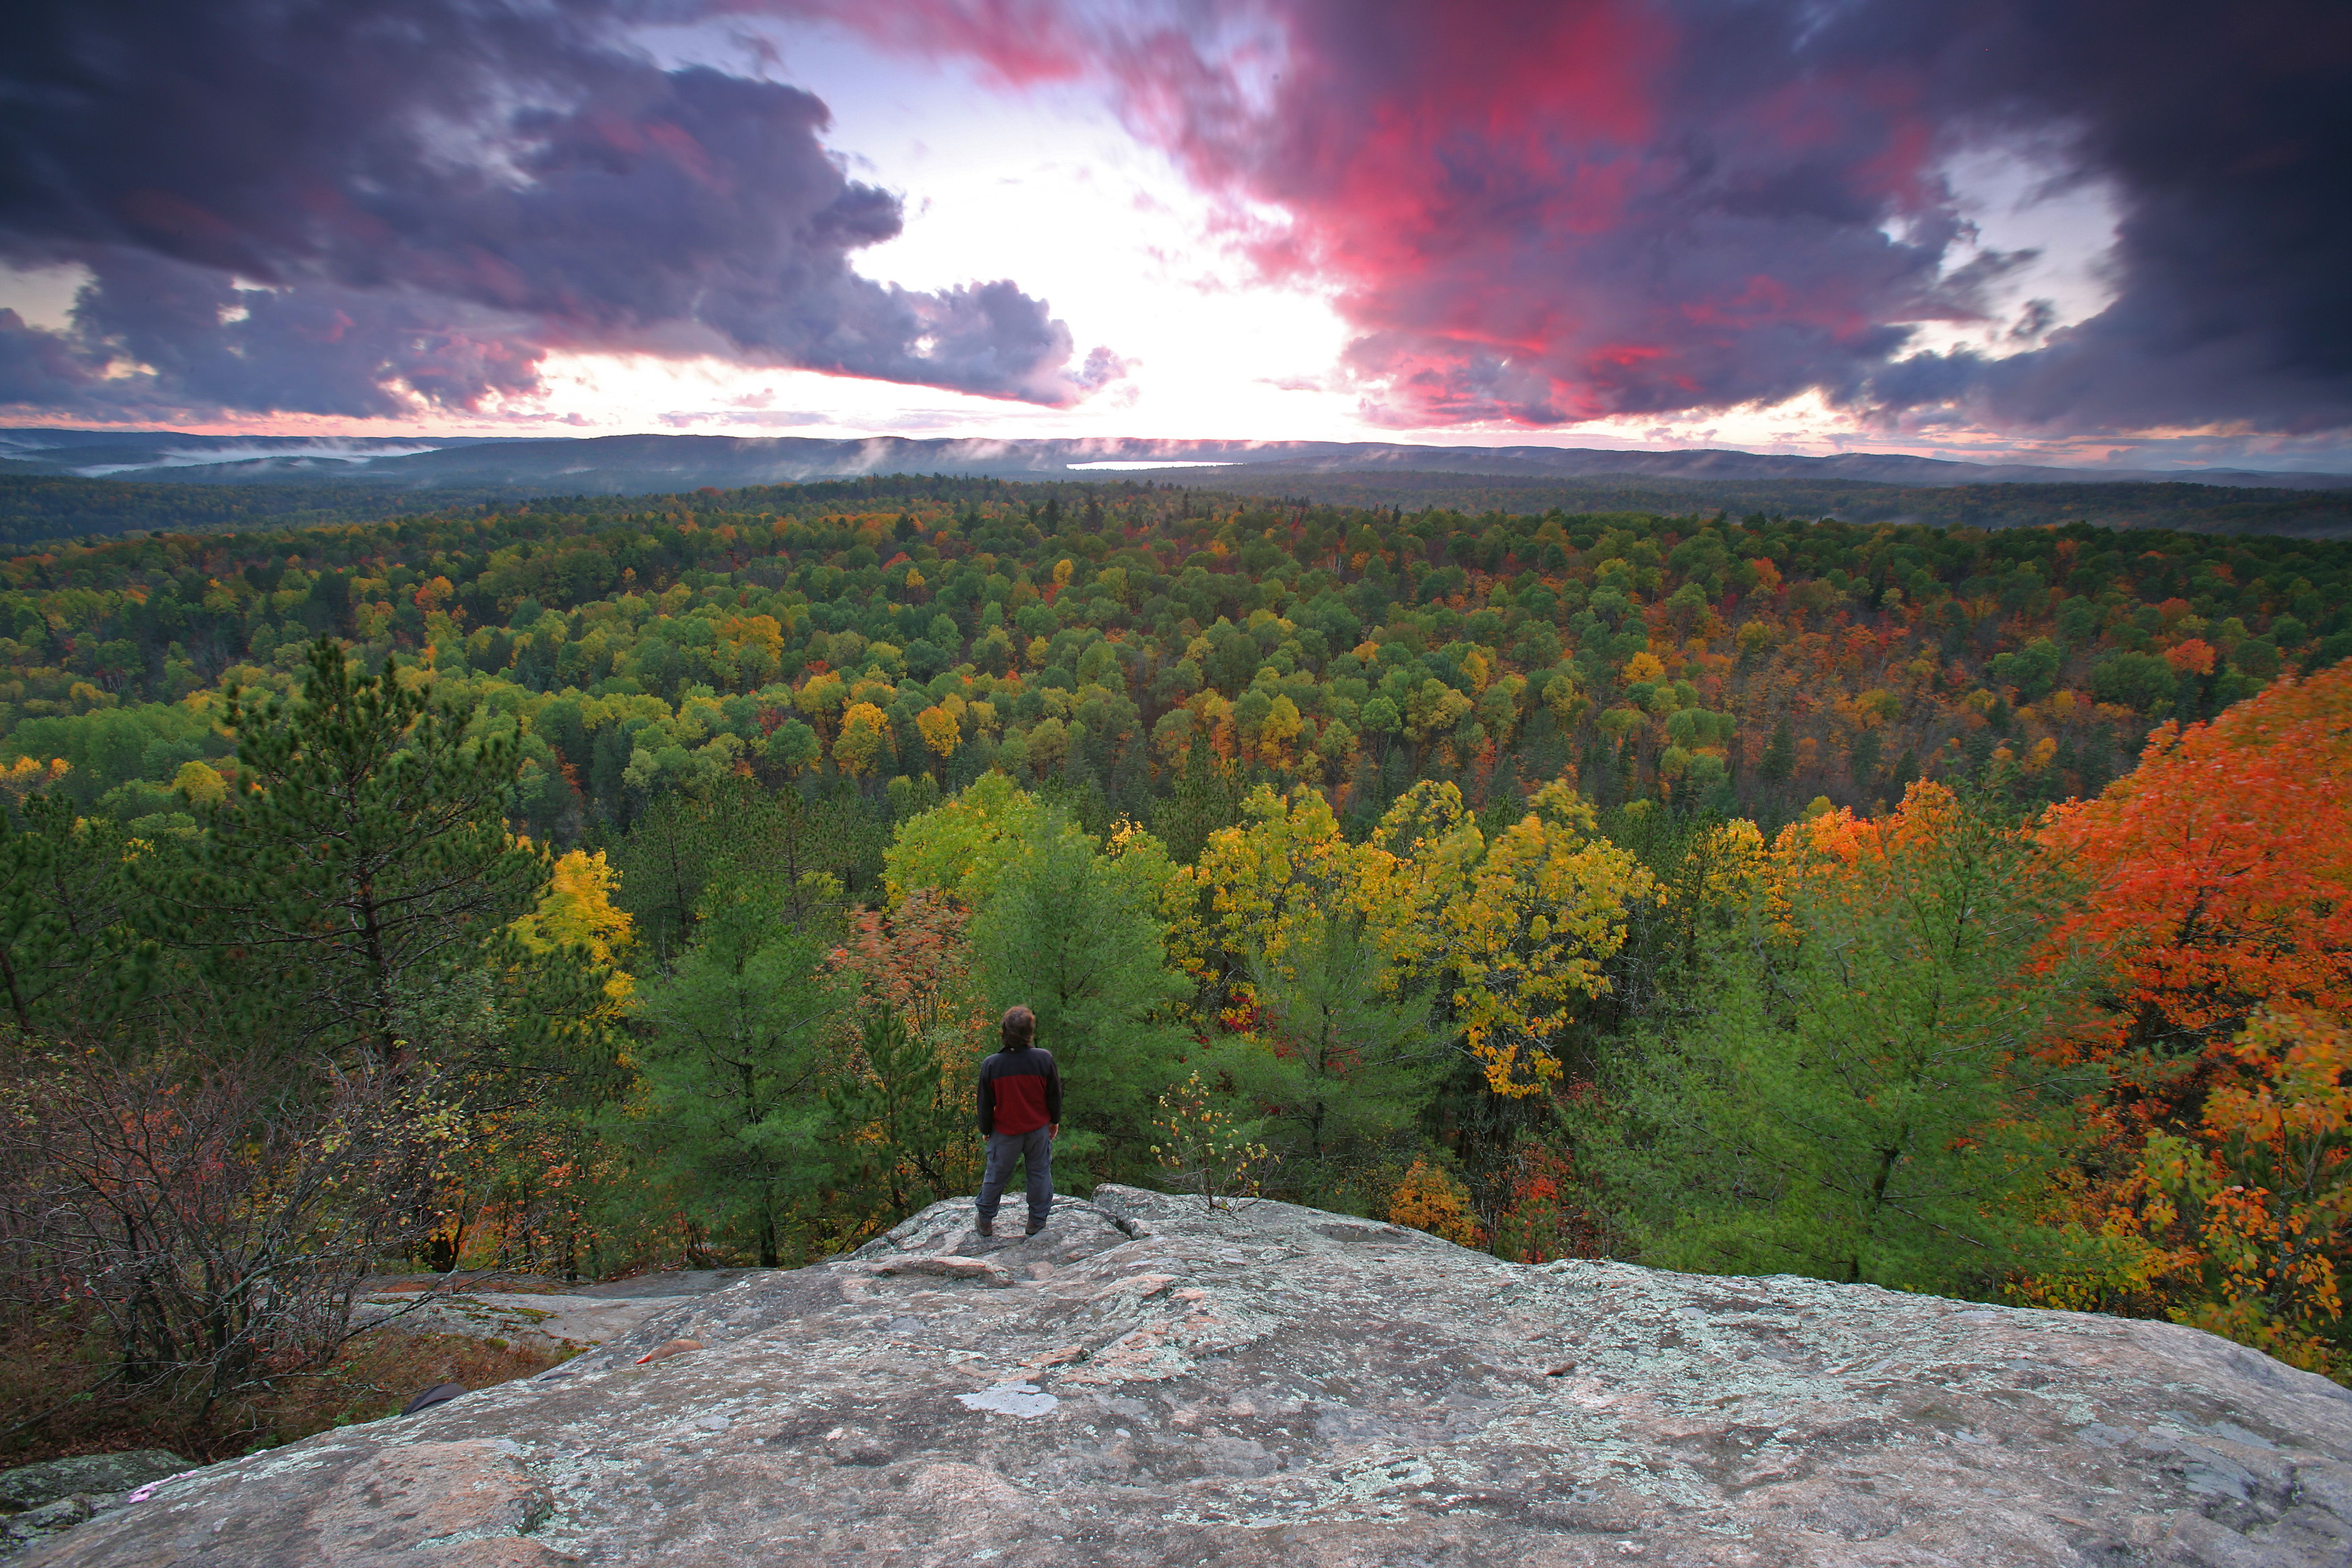 Hiker on Lookout Trail at Sunset in Autumn, Algonquin Park, Ontario